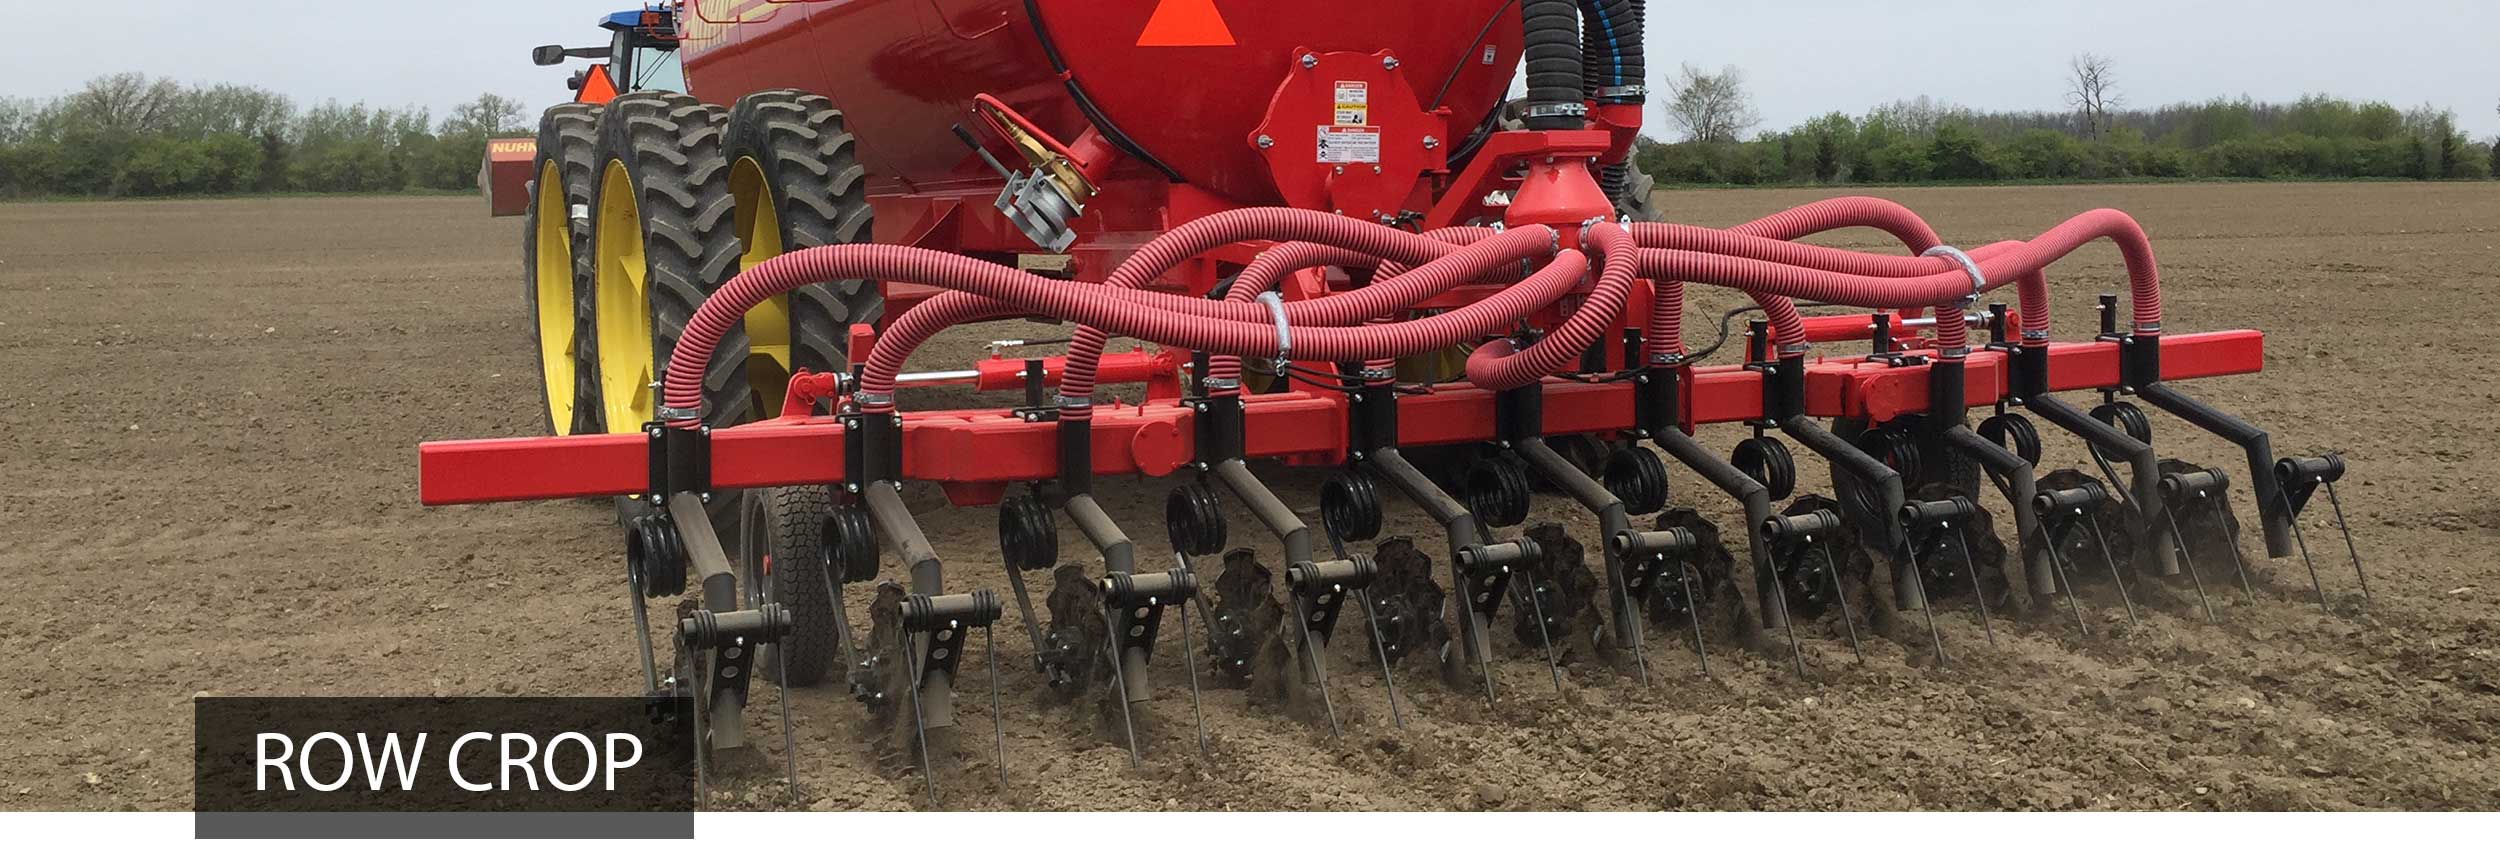 Row Crop Injector Nuhn Industries Ltd Liquid Manure